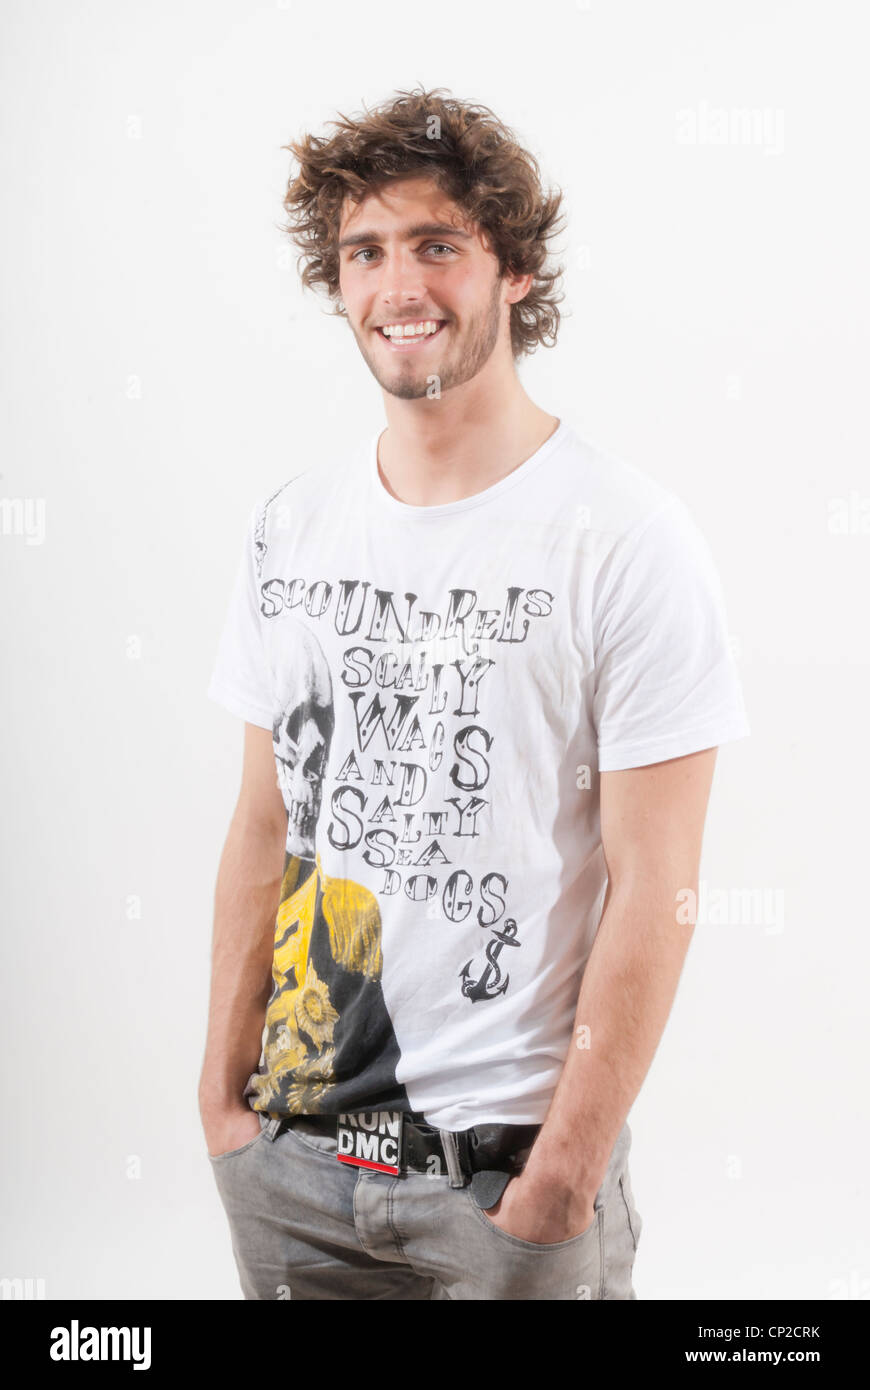 Young adult Caucasian male model in casual pose wearing t